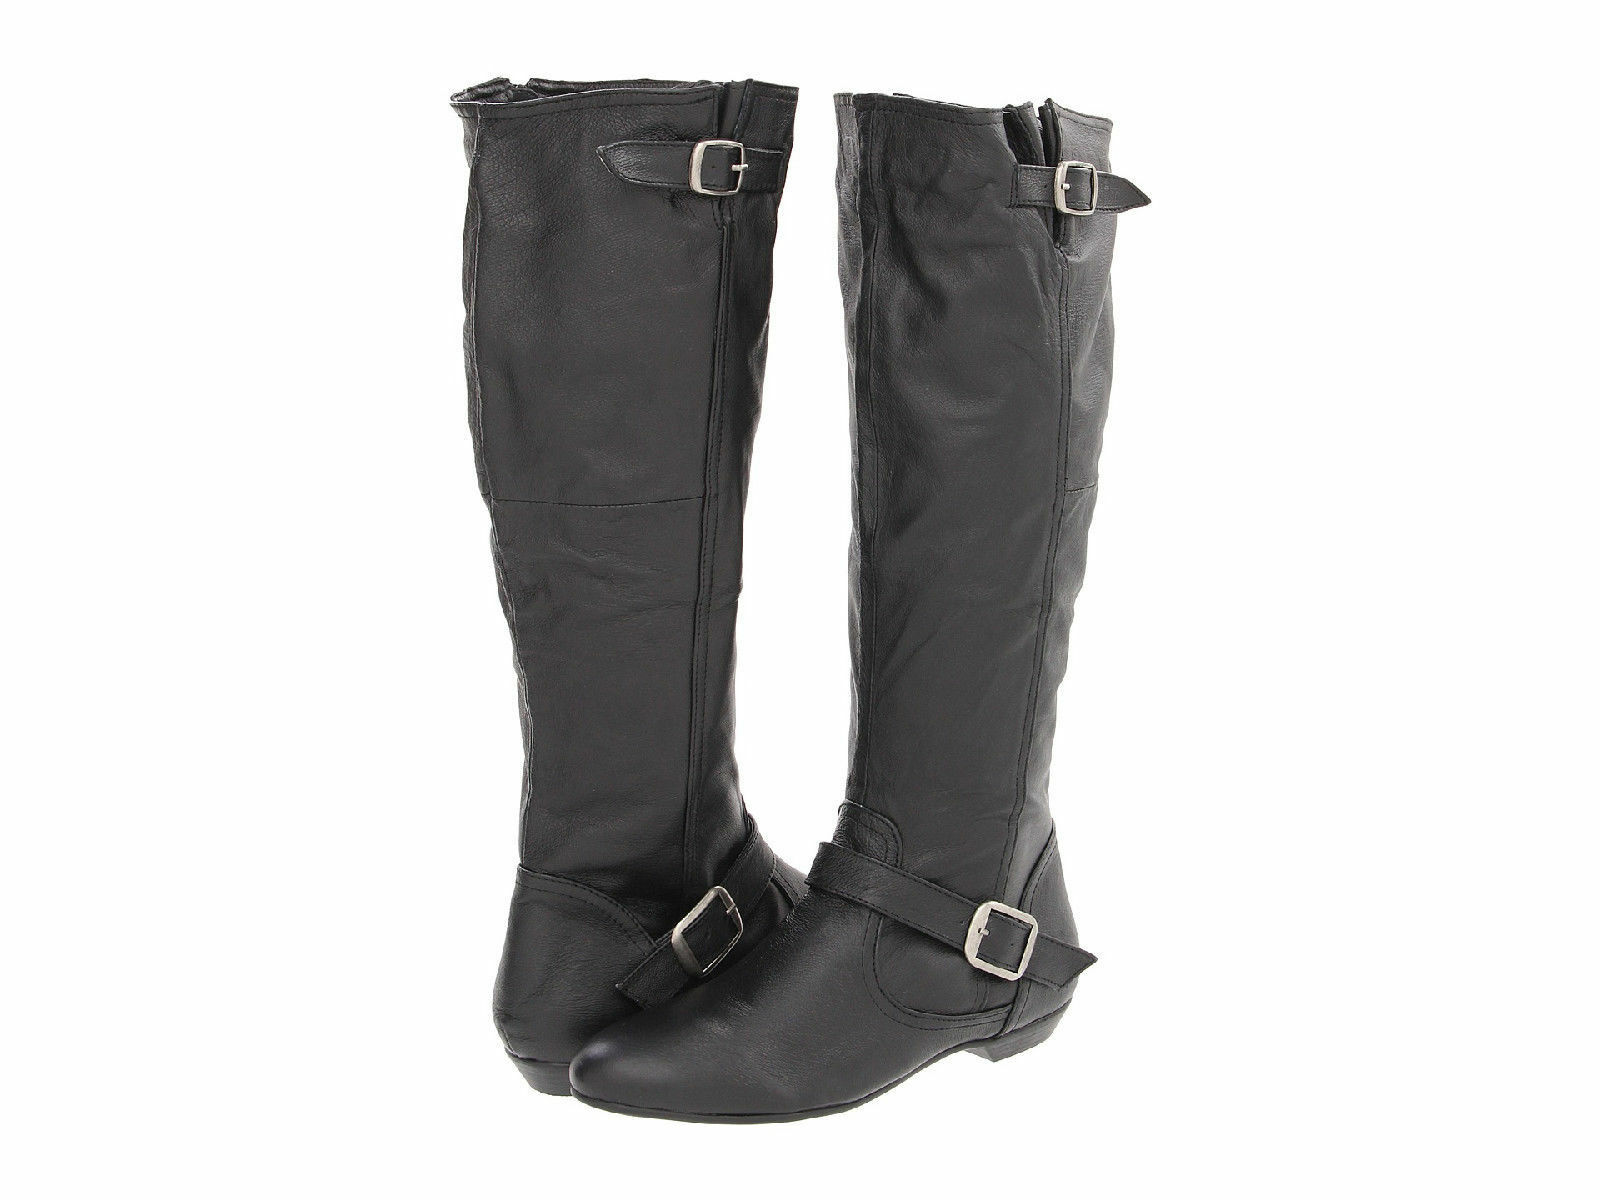 Womens Size 6 * CHINESE LAUNDRY * Black Leather New Capture Knee High Boots NEW